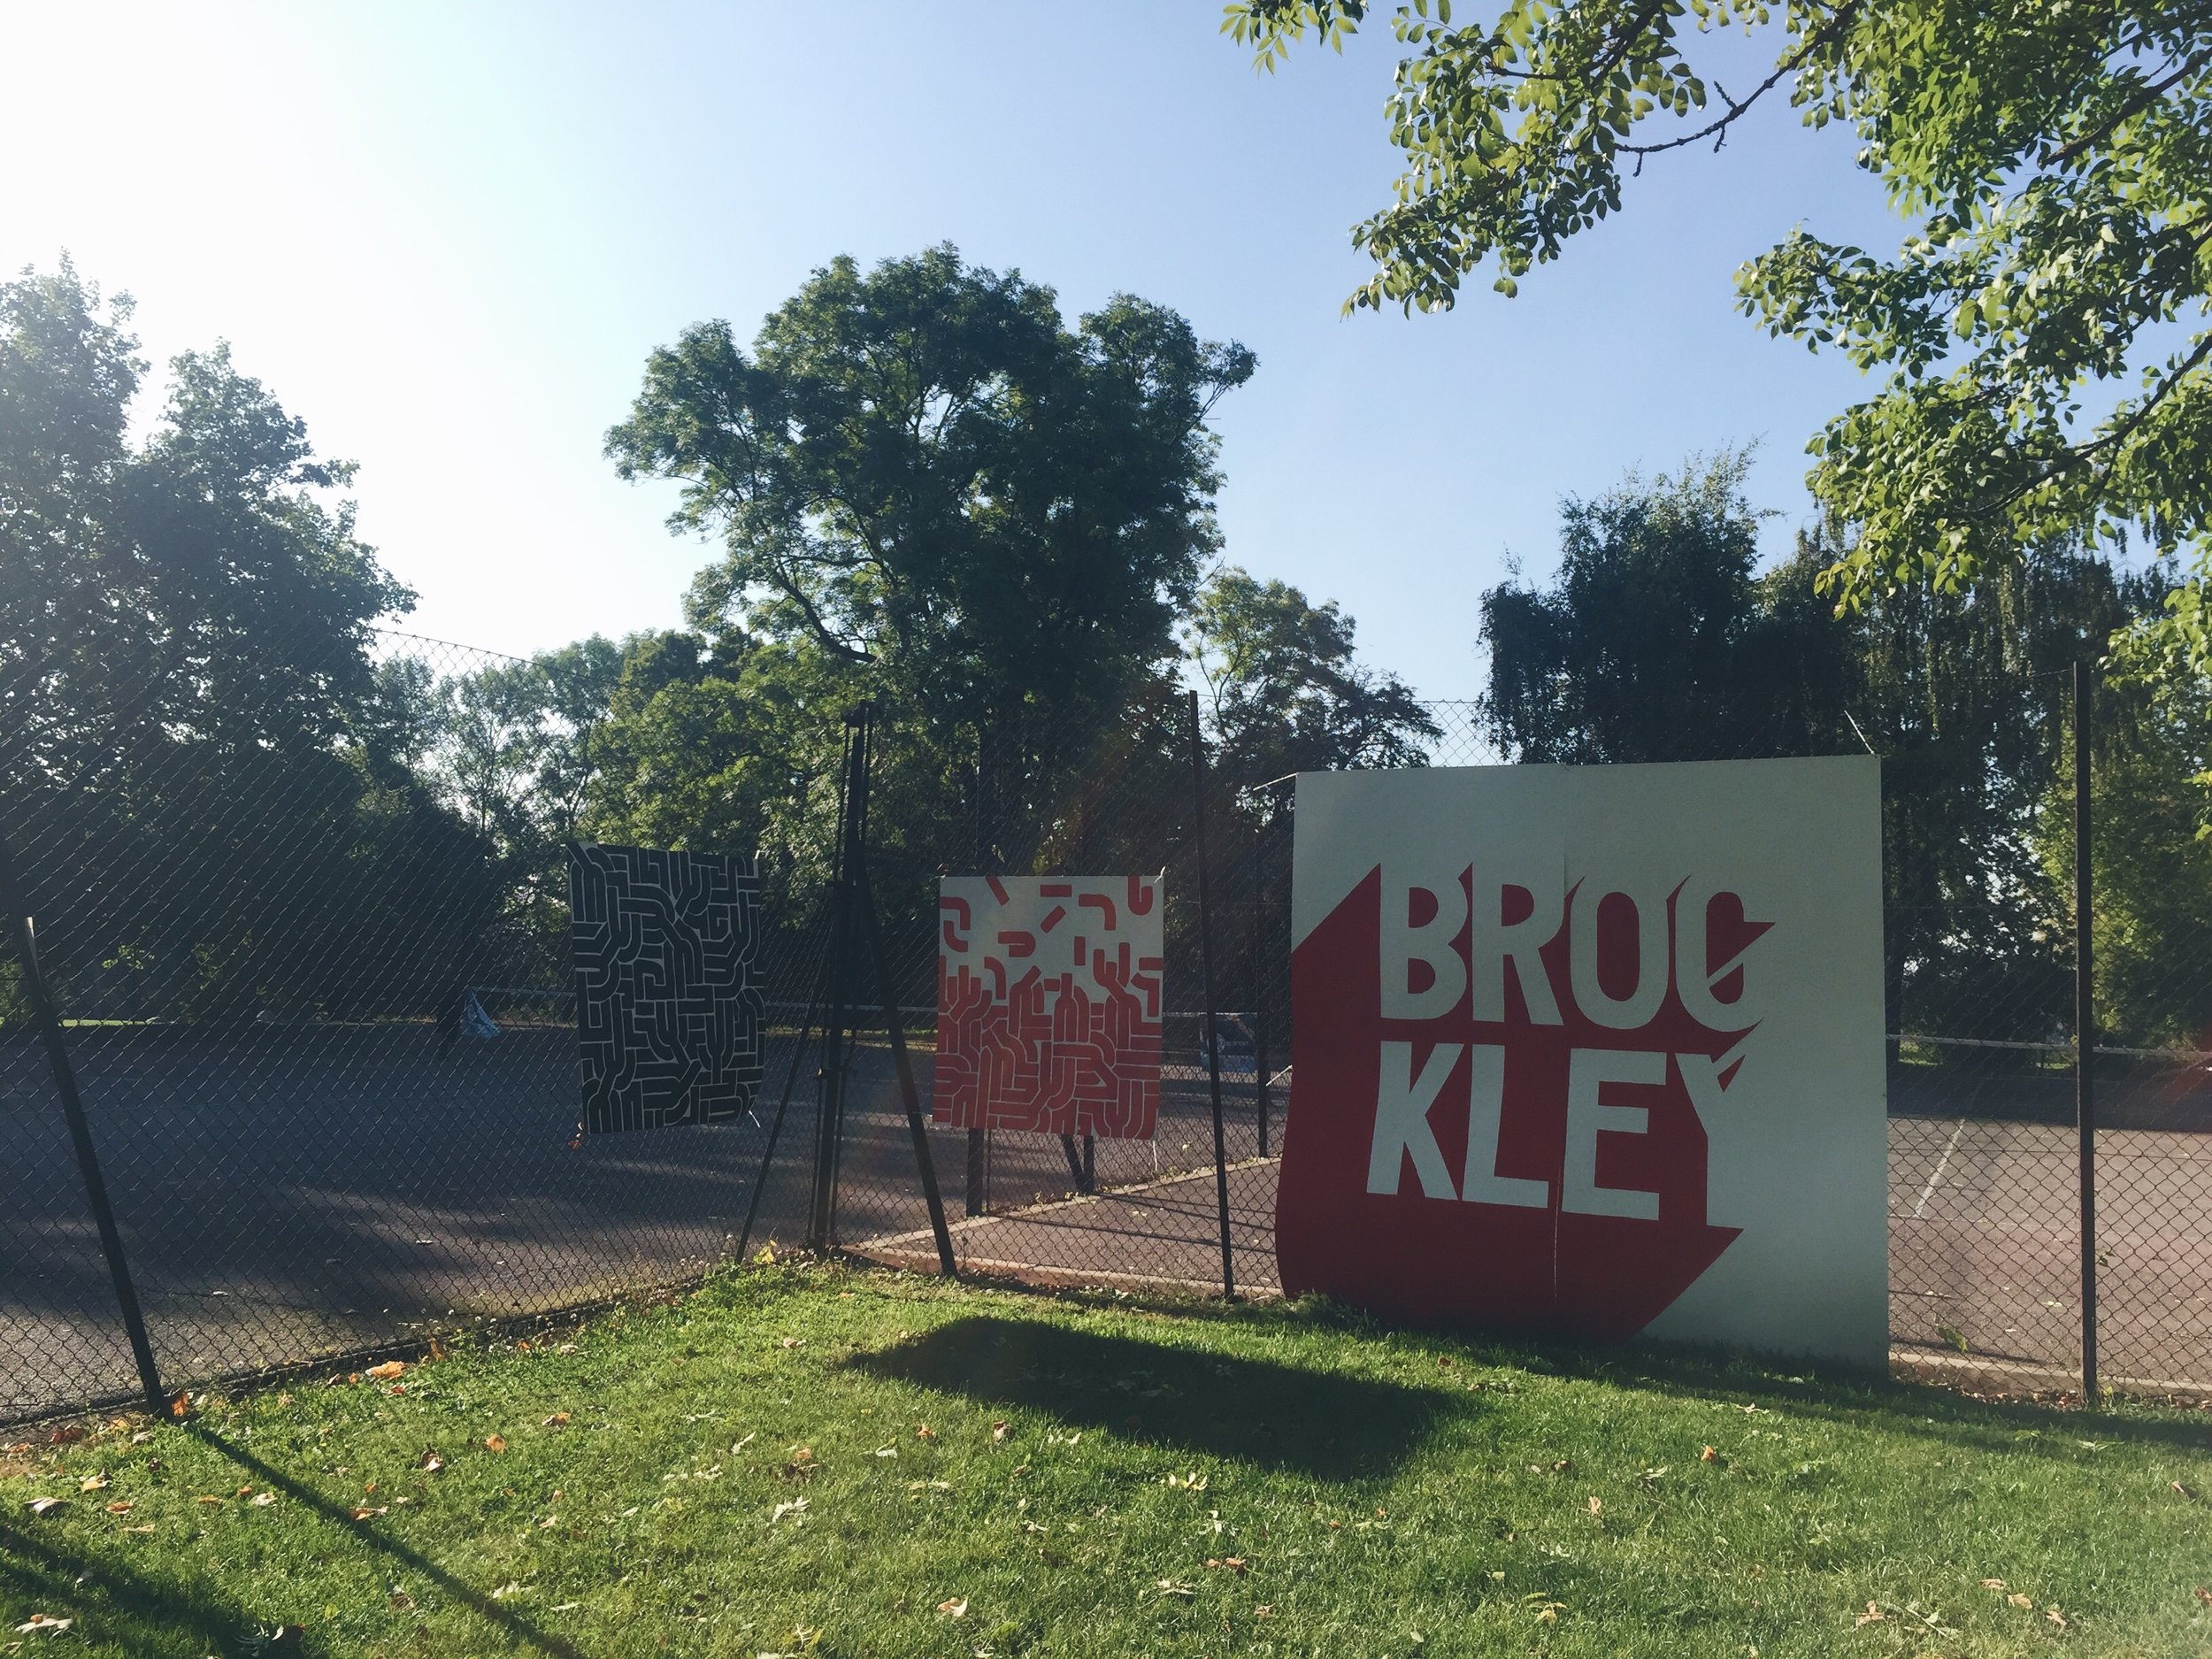 brockley_best walk routes on go jauntly